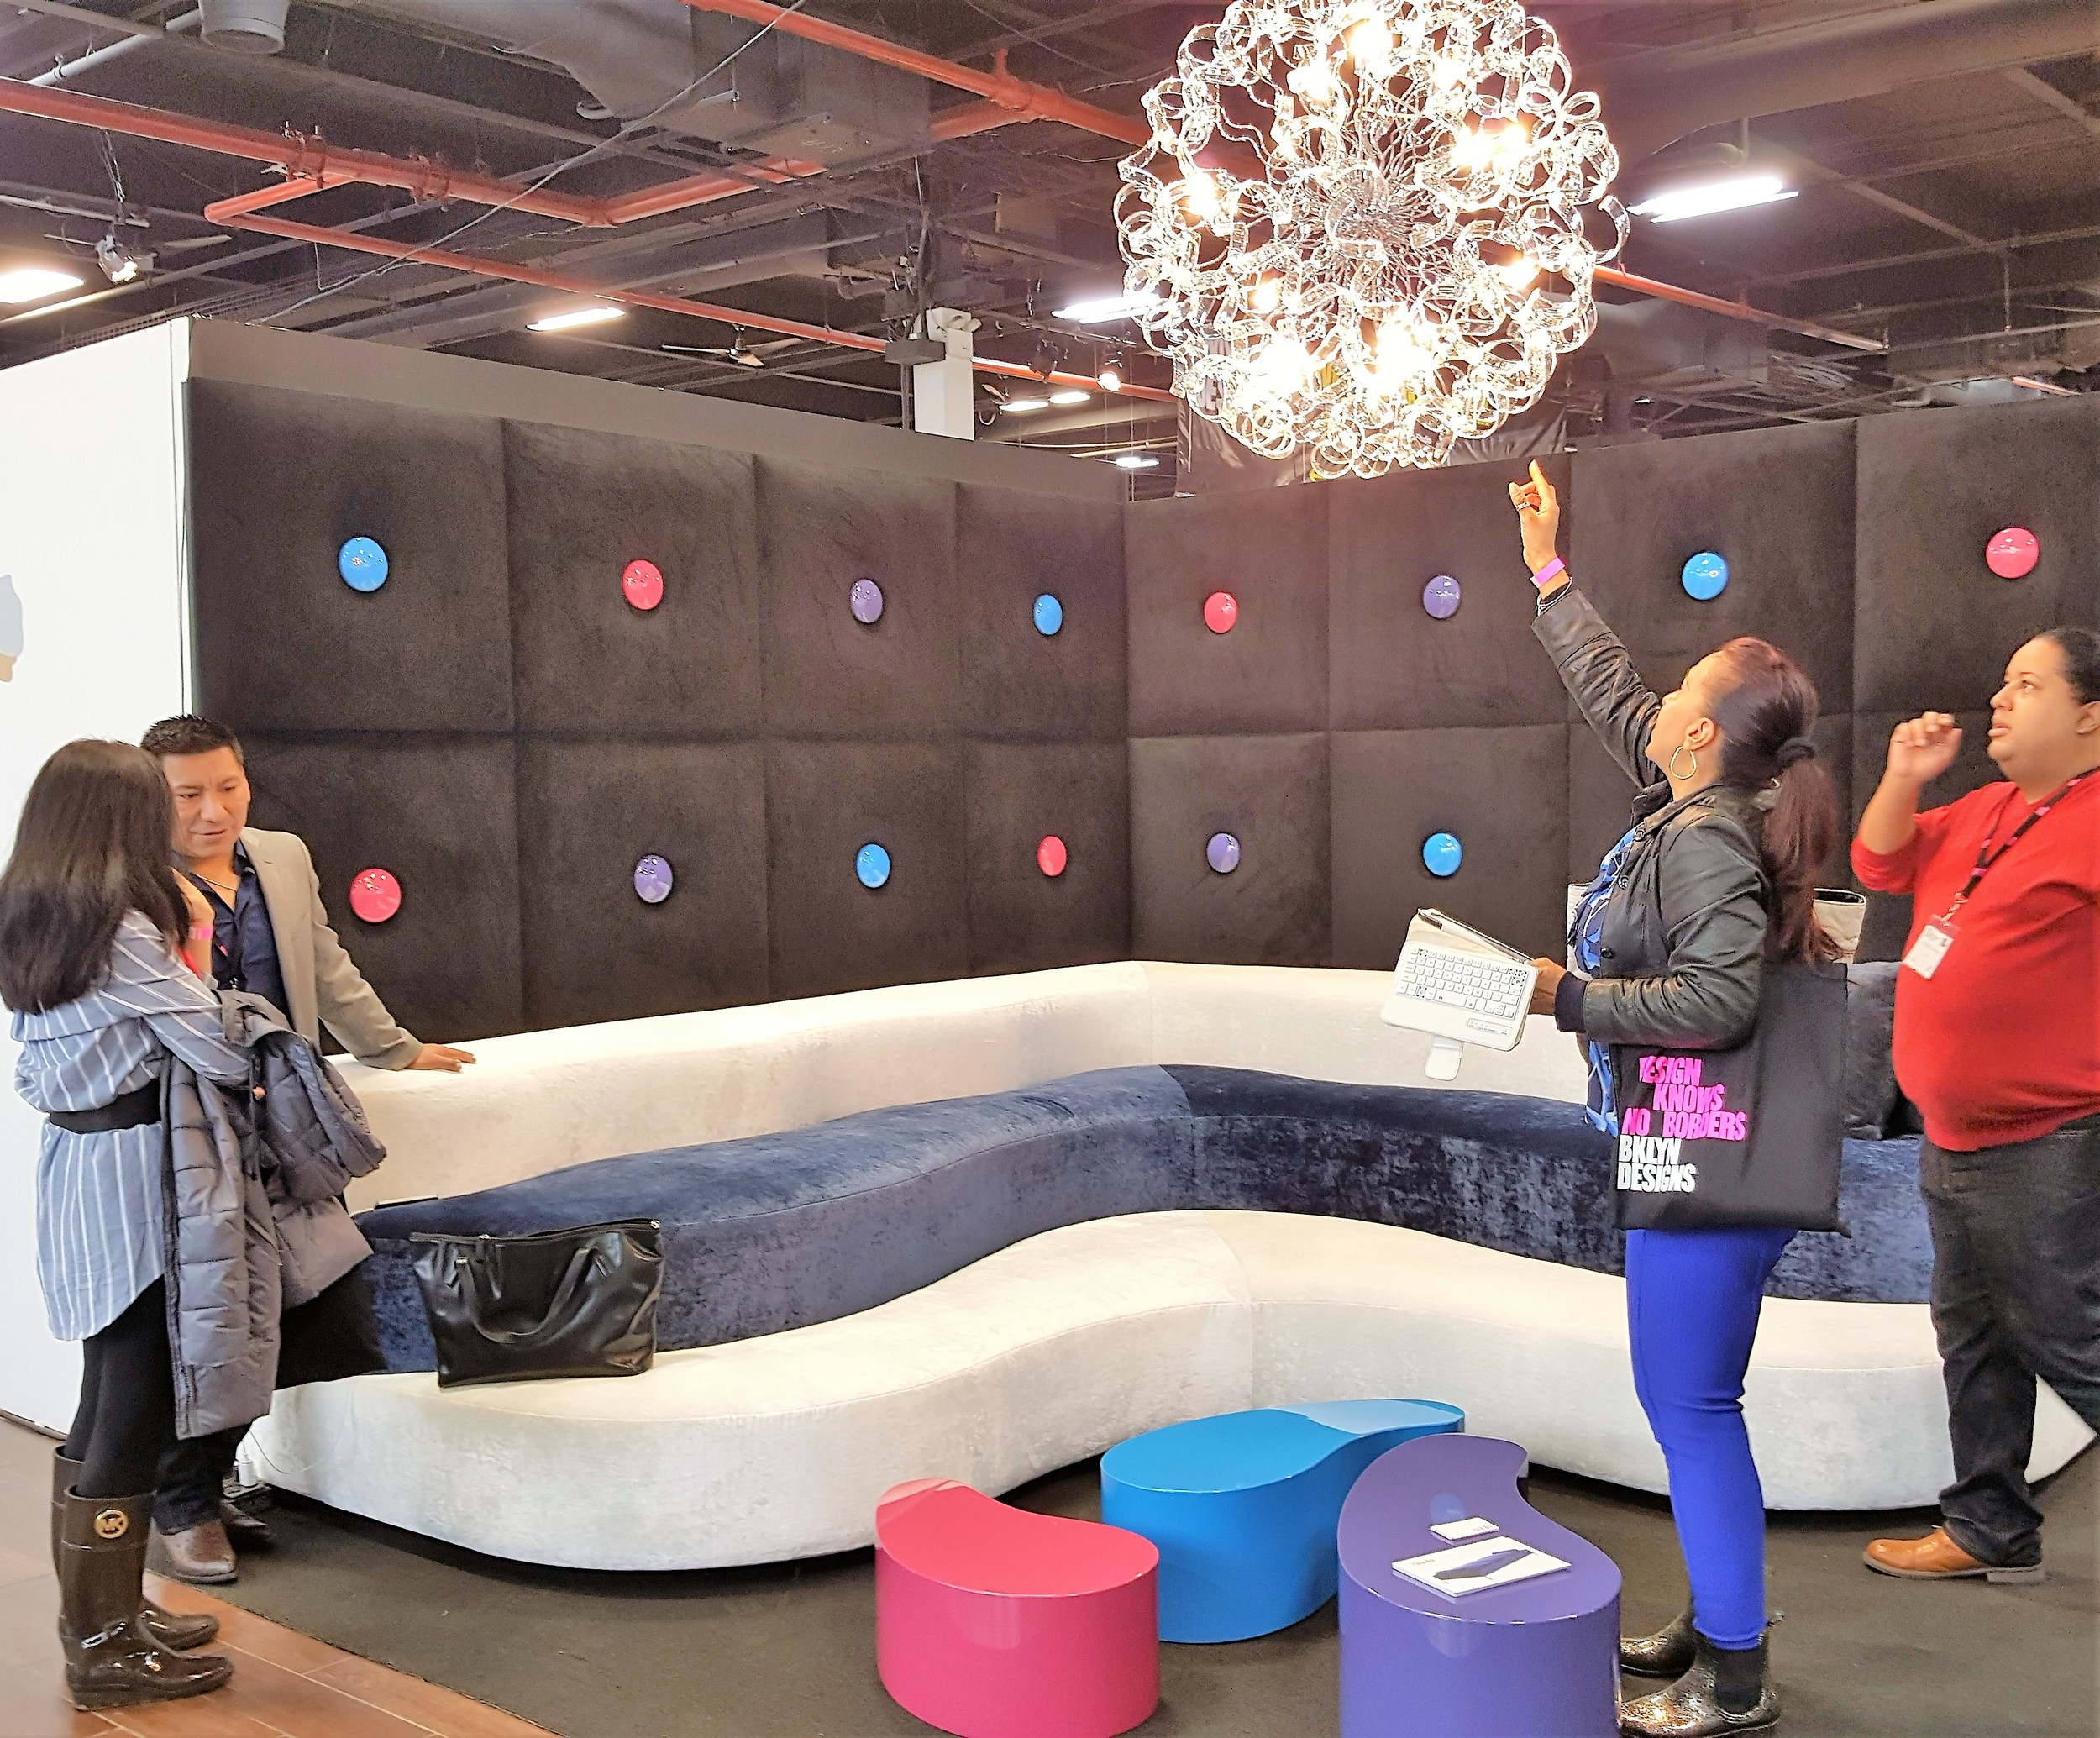 Category: Innovative Booth Design